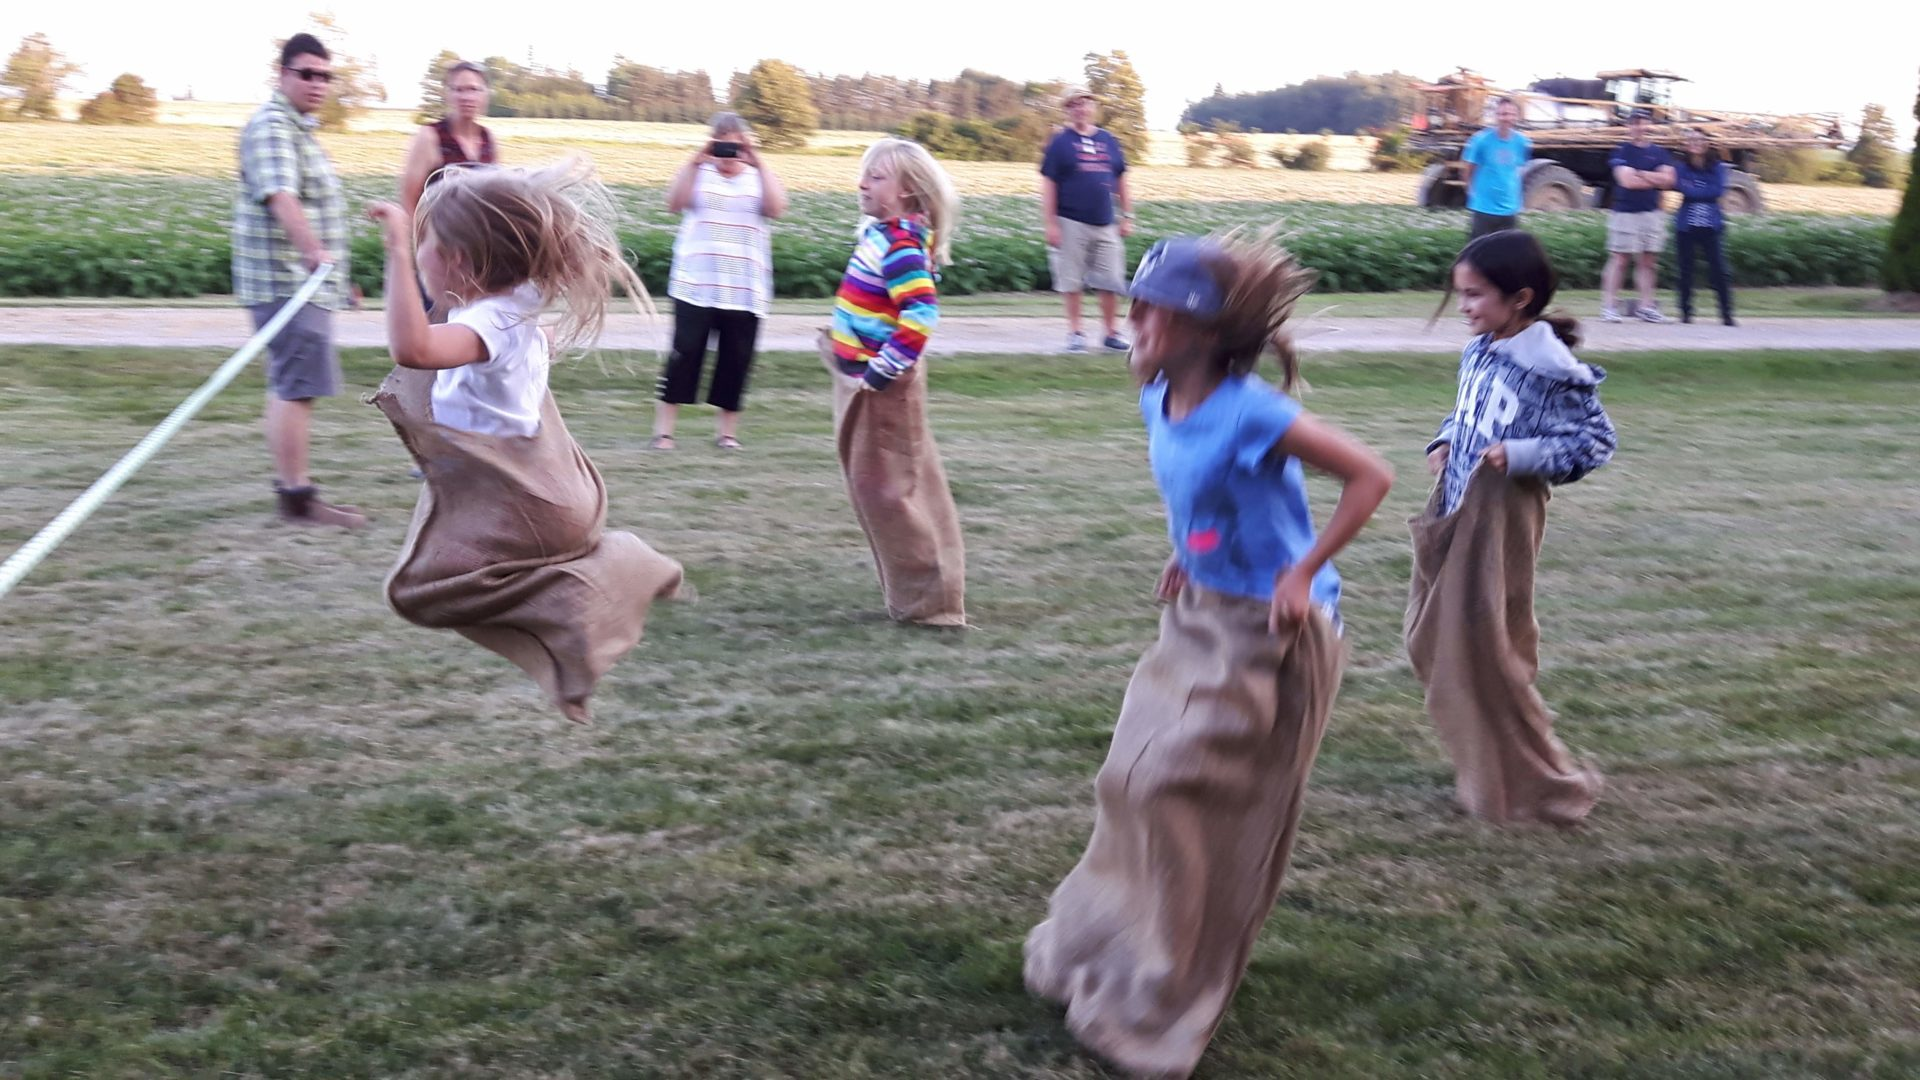 Cloverbud members jumping high to get to the finish line in a potato bag race